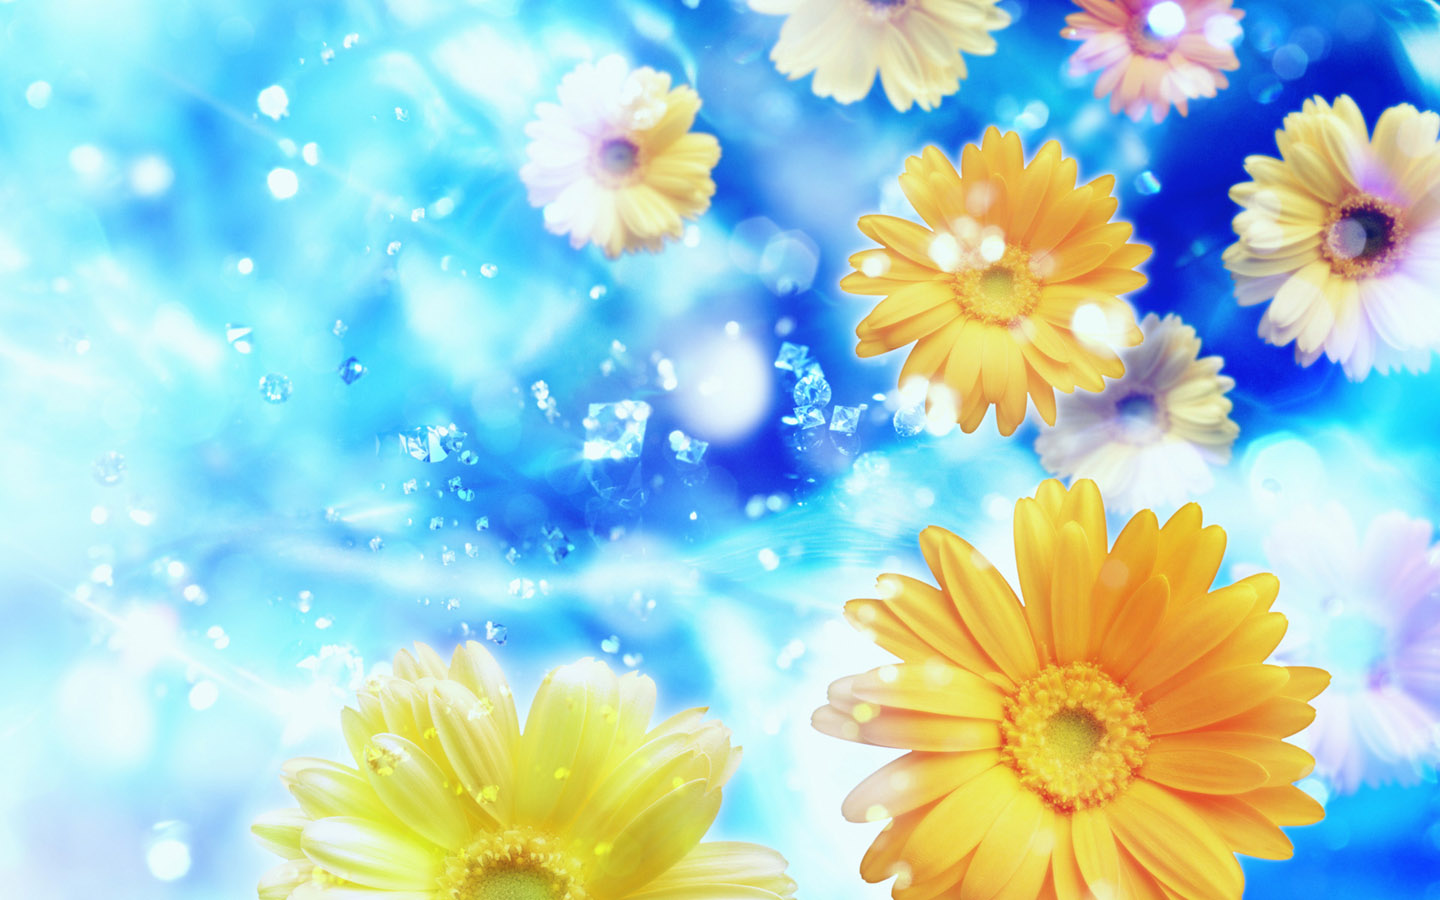 Flower Wallpapers Full Hd Fantasy Flowers Unique Wallpaper